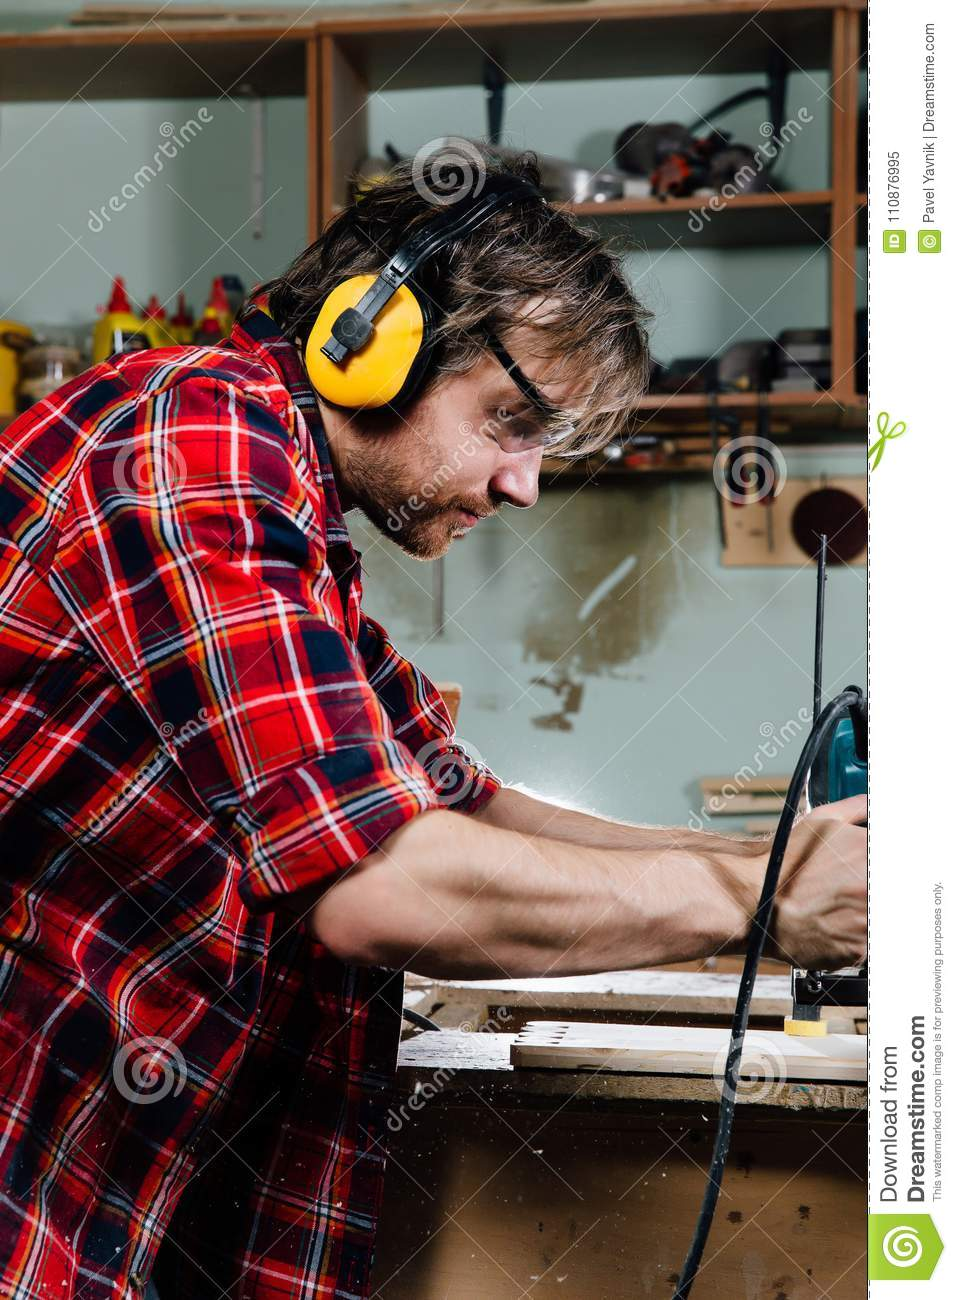 Carpenter working of manual hand milling machine in the carpentry workshop. joiner.